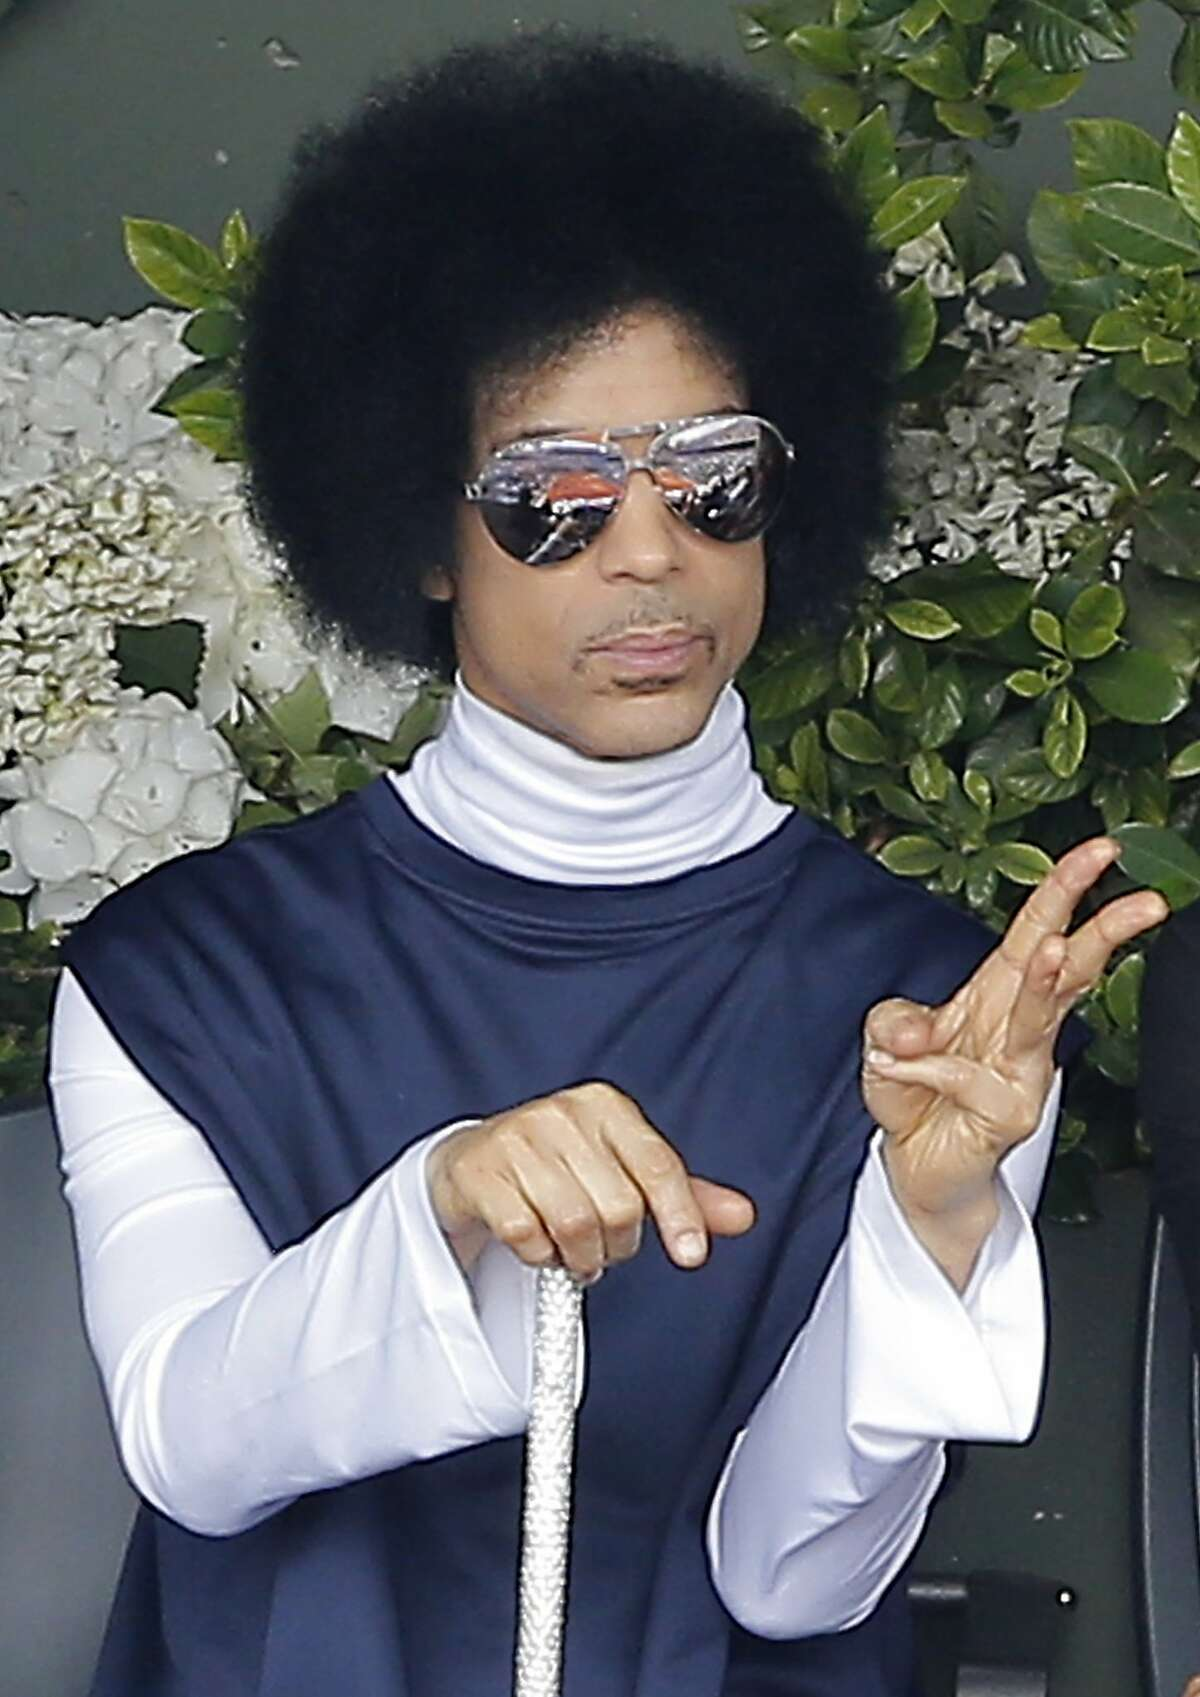 FILE - In this Monday, June 2, 2014, file photo, U.S. pop singer Prince watches the fourth round match of the French Open tennis tournament between Spain's Rafael Nadal and Serbia's Dusan Lajovic at the Roland Garros stadium, in Paris.